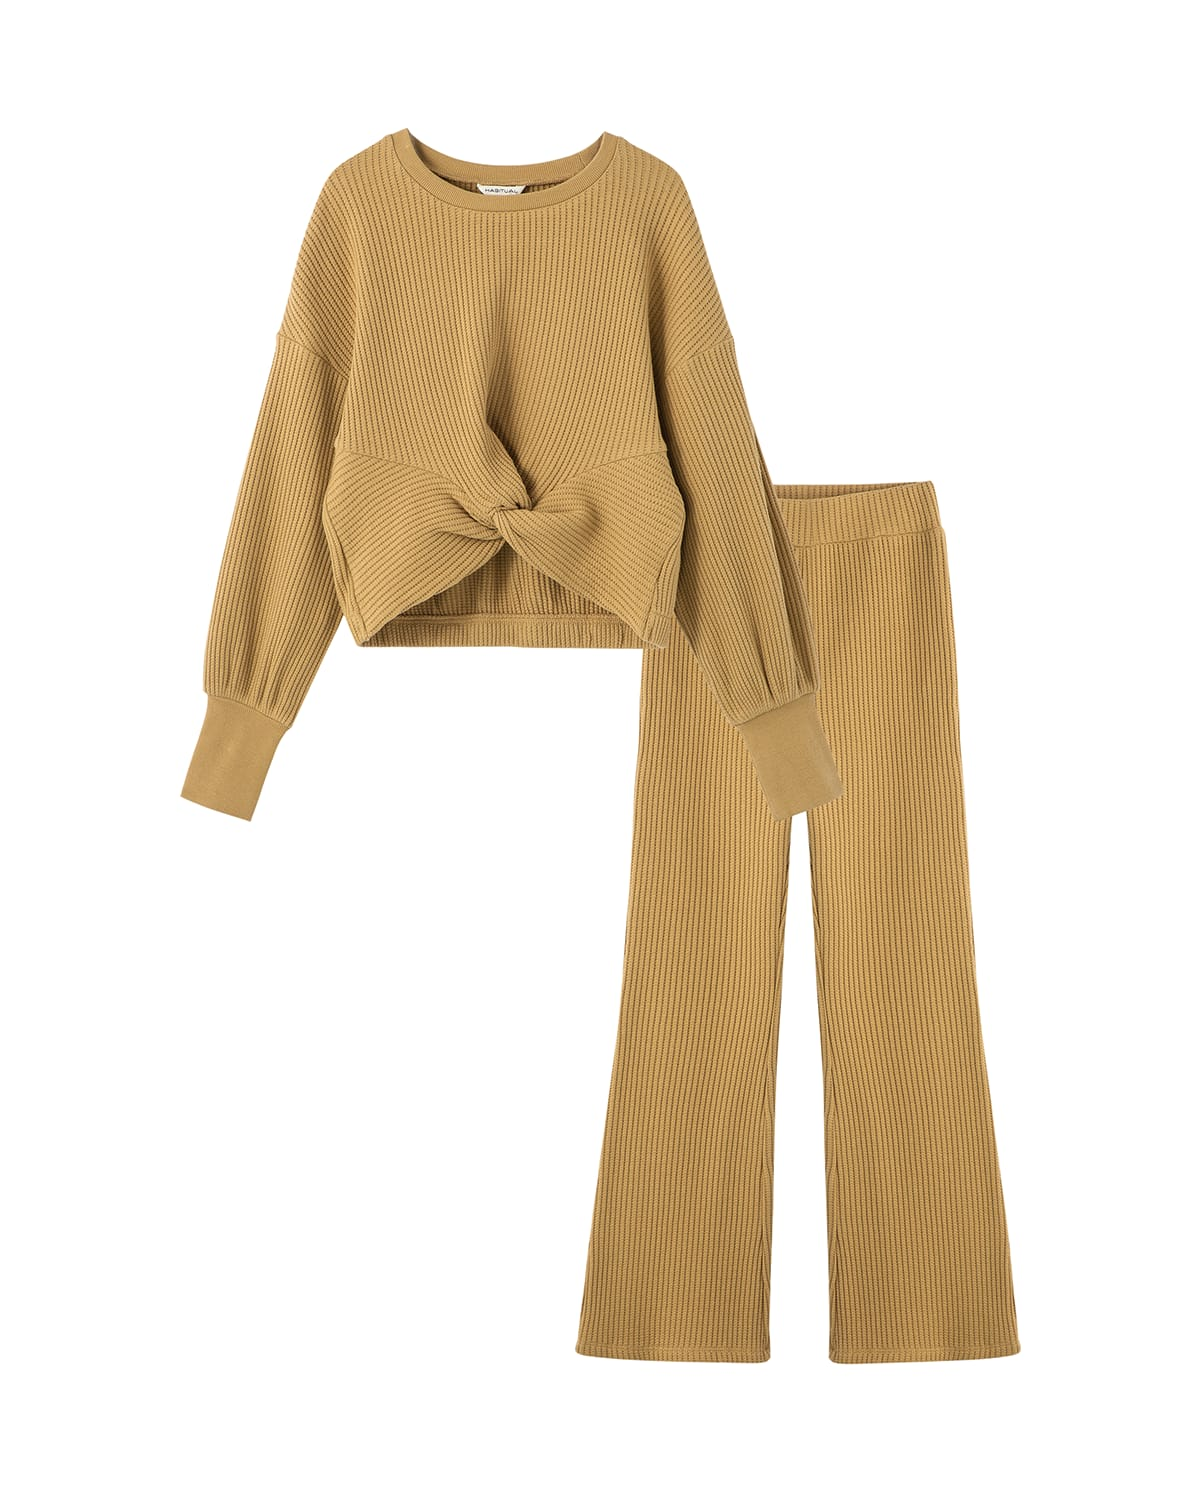 Girl's Twist-Front Knit Two-Piece Sweater Set